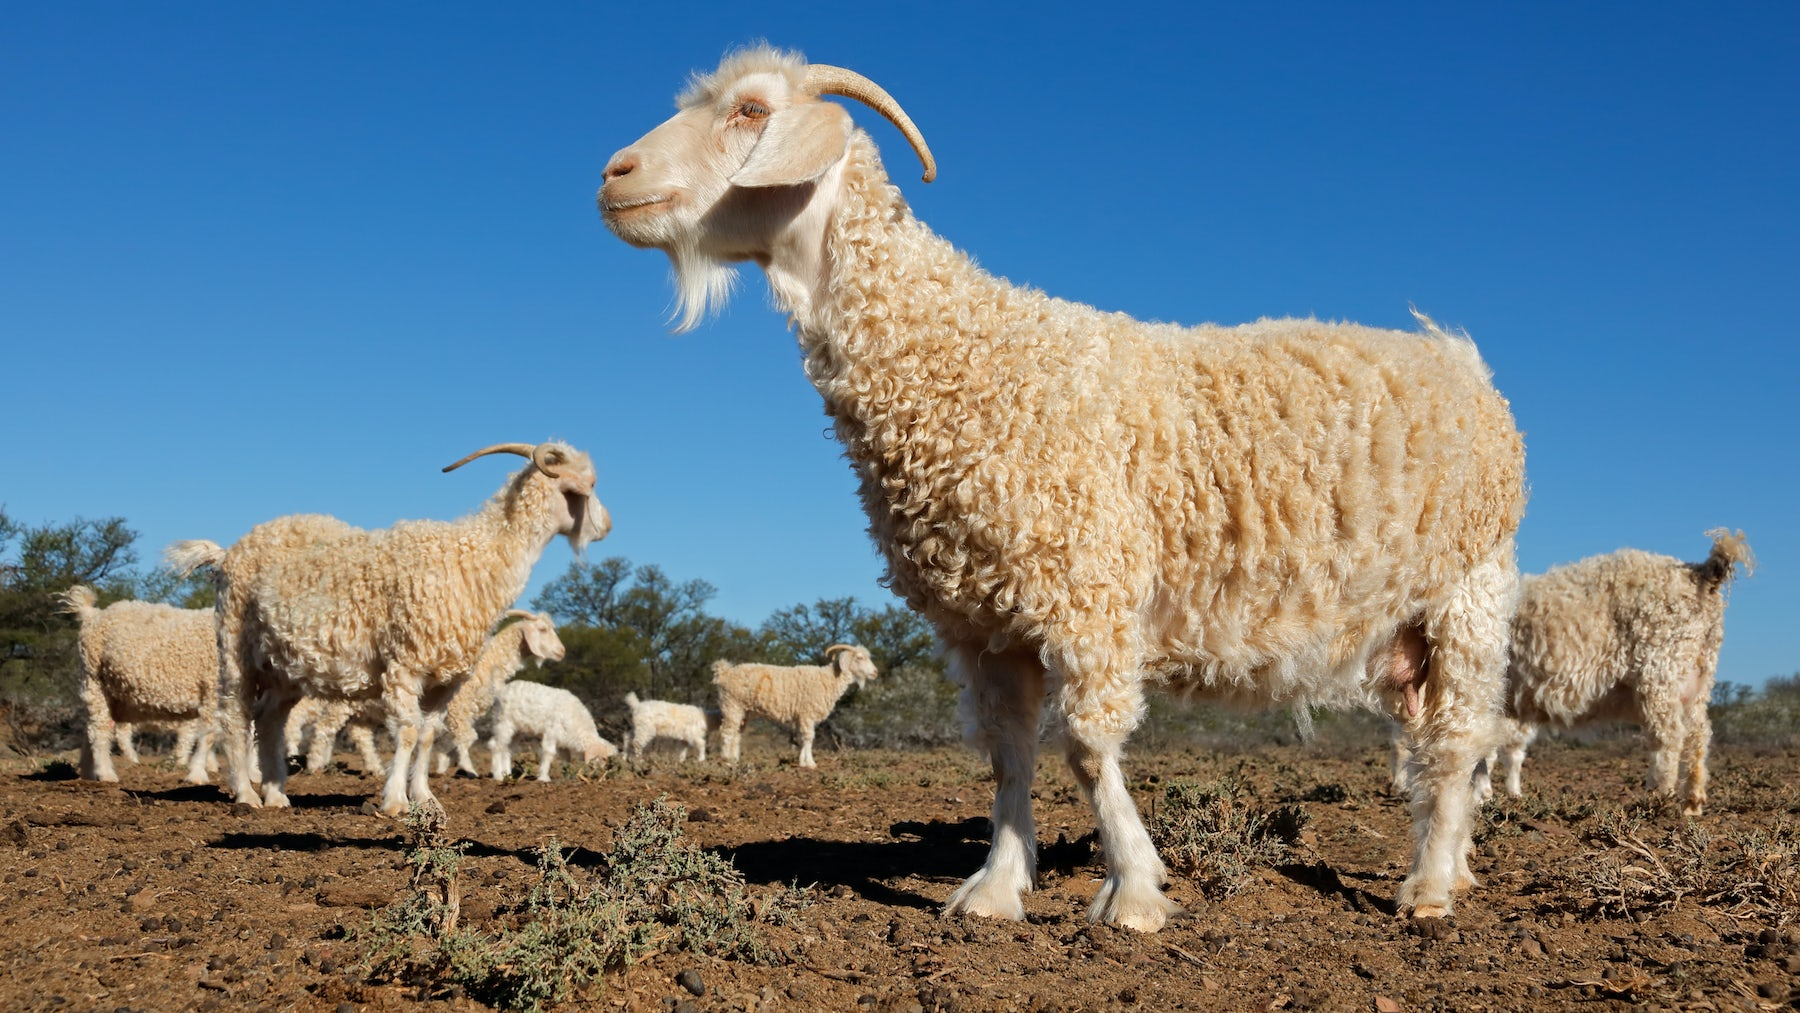 $117 Million South African Mohair Industry Threatened by H&M, Inditex Ban